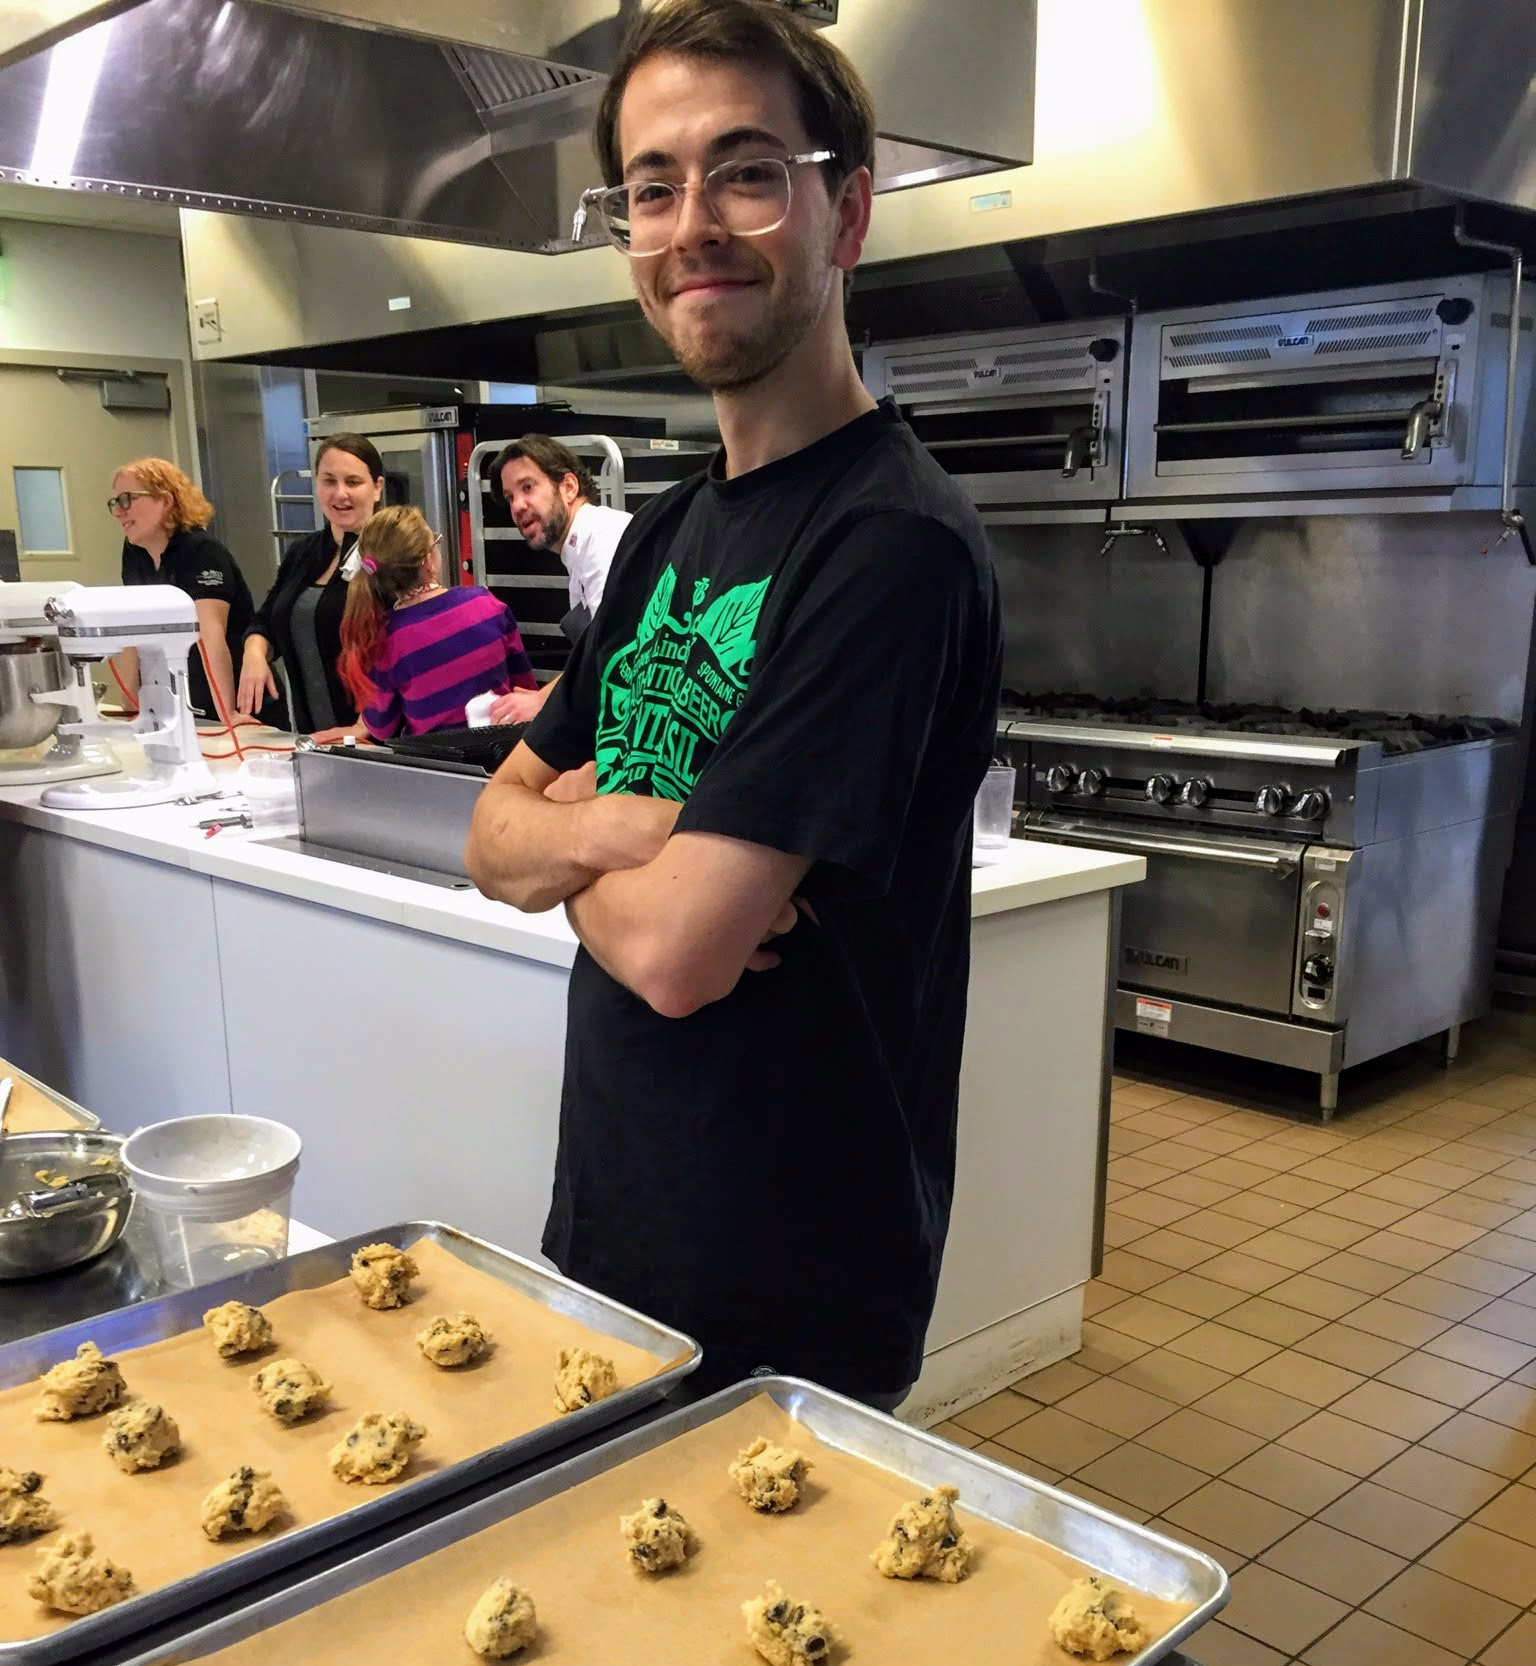 Chris Parsons - Chris joined waffles for Tourette in 2018 as one of our master waffle makers. Chris is also Head Barista at Hobbs Coffee and the owner of Parsons Cookies. When not preparing waffles or coffee, Chris can be found on the campus of Widener University where he is pursuing a degree in culinary arts.